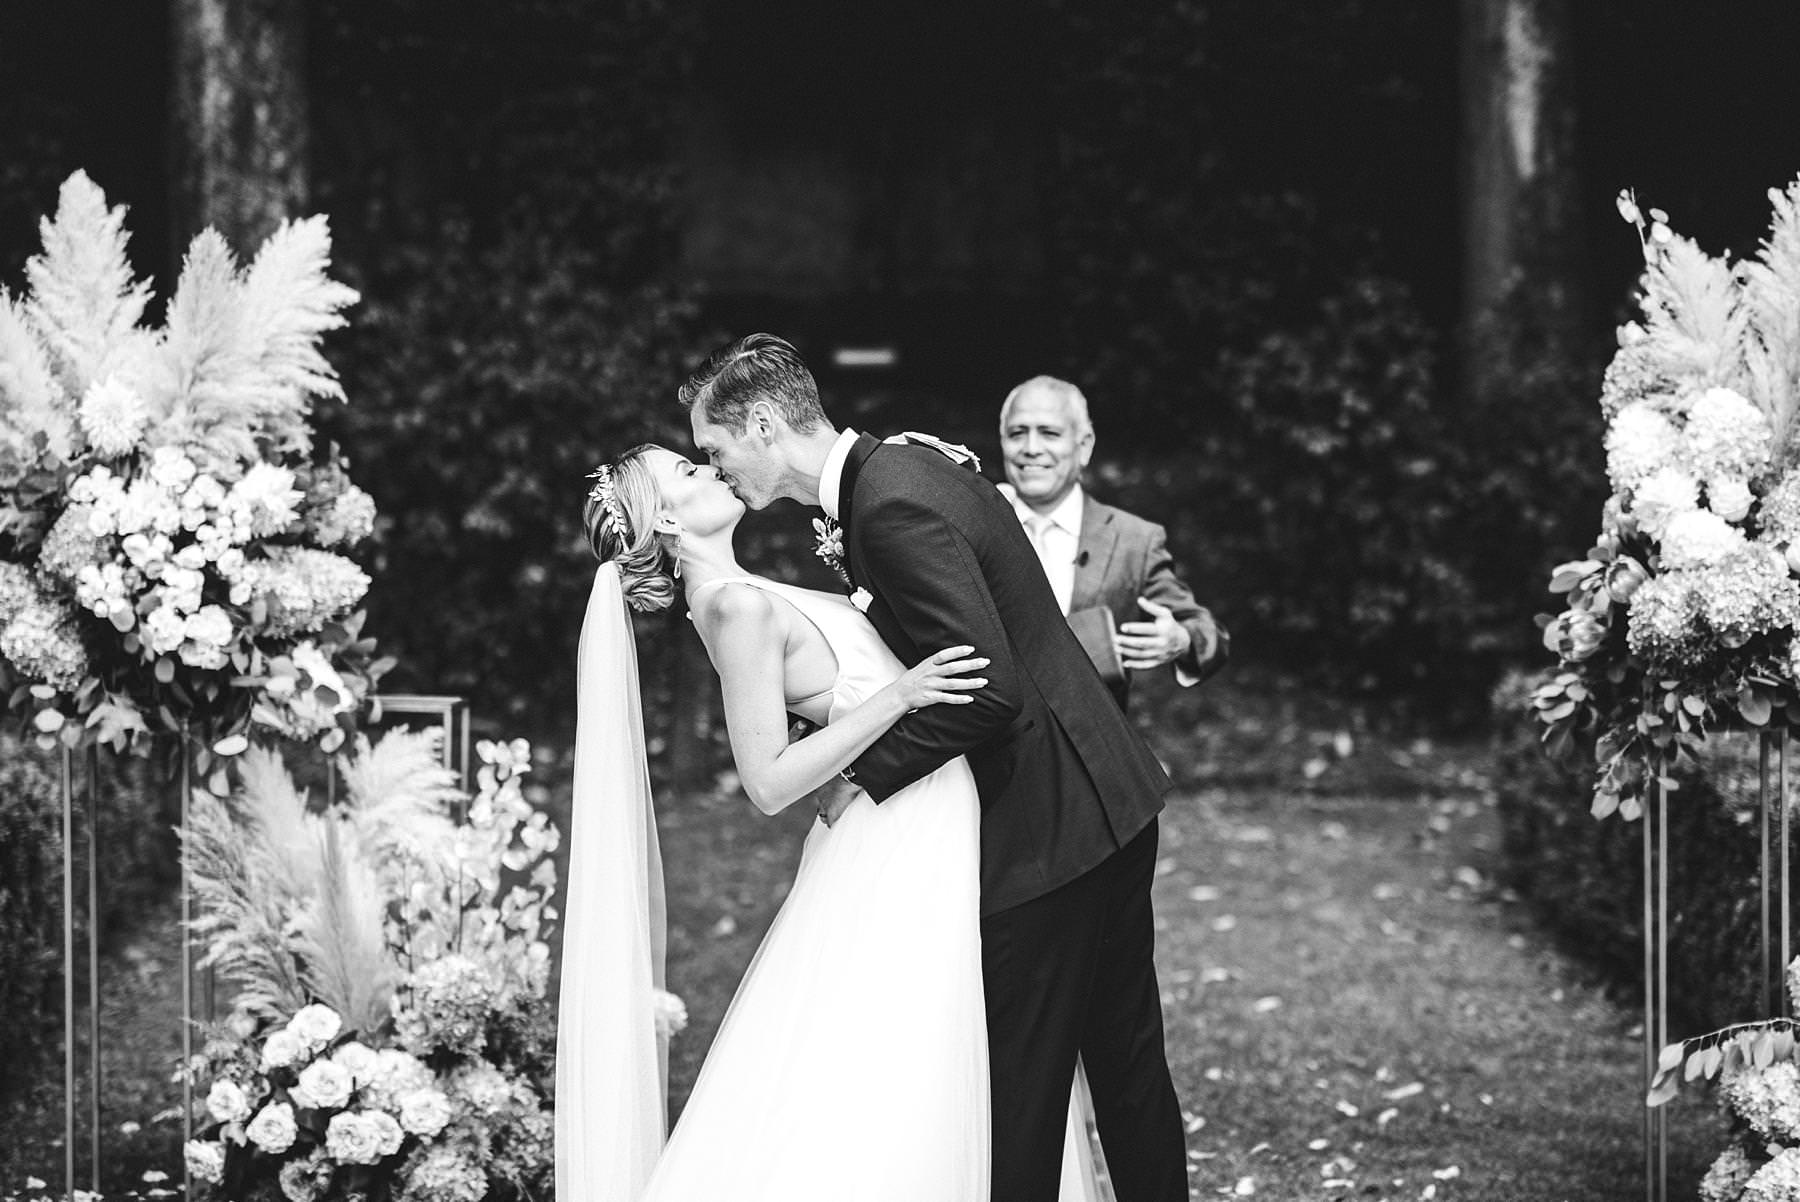 Timeless wedding celebration. Lovely moment of bride and groom in the garden of Villa La Vedetta, Florence